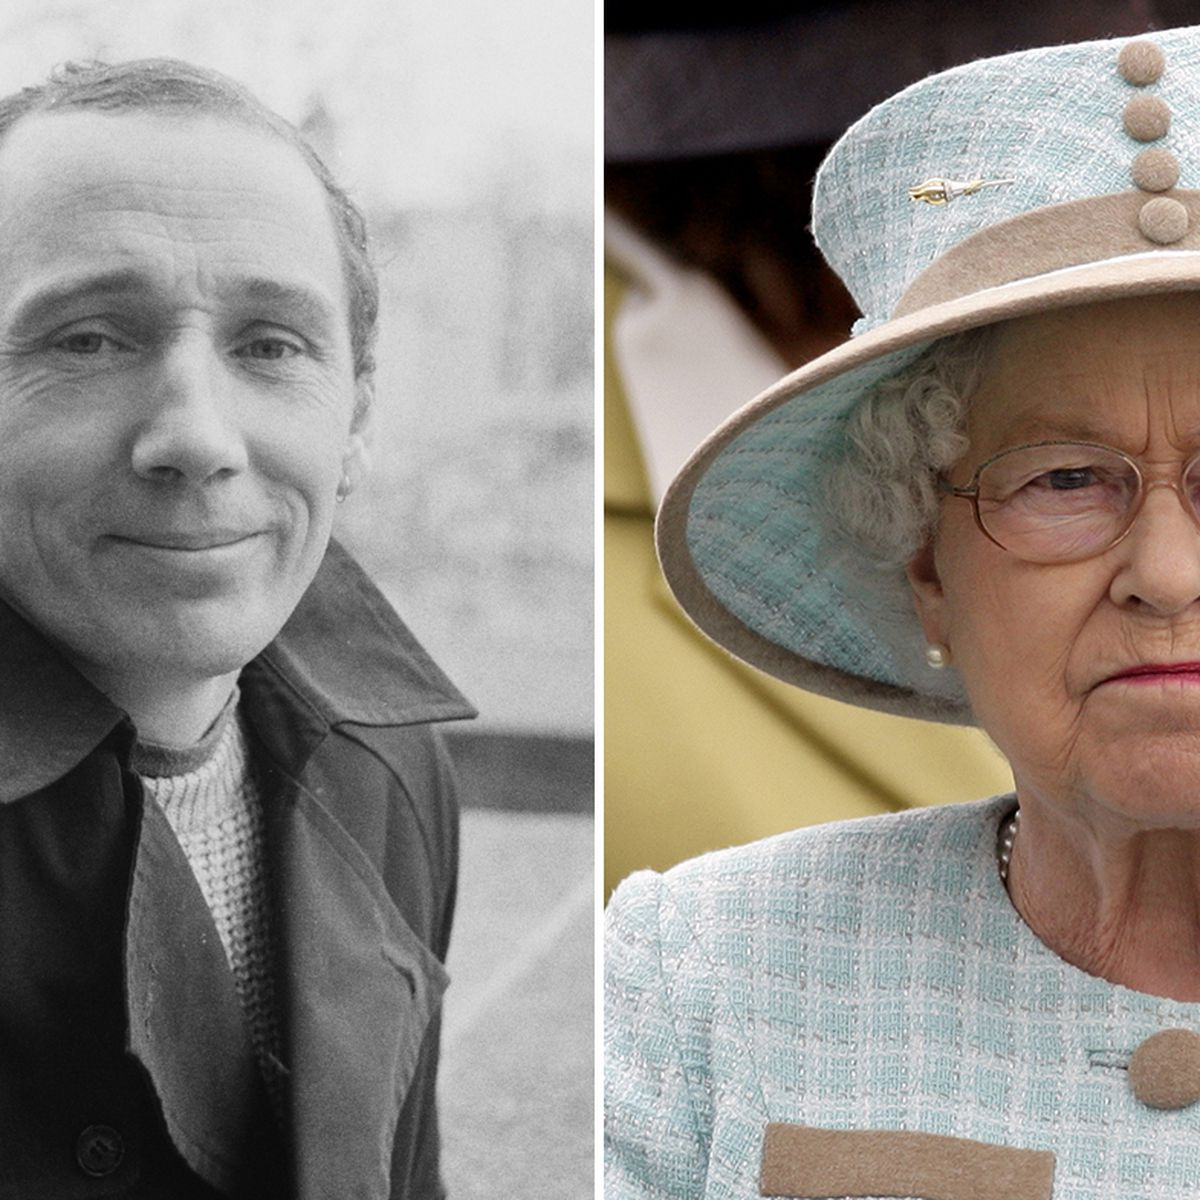 Royal Scandal What Happened To The Man Who Broke Into The Queen S Bedroom 9honey